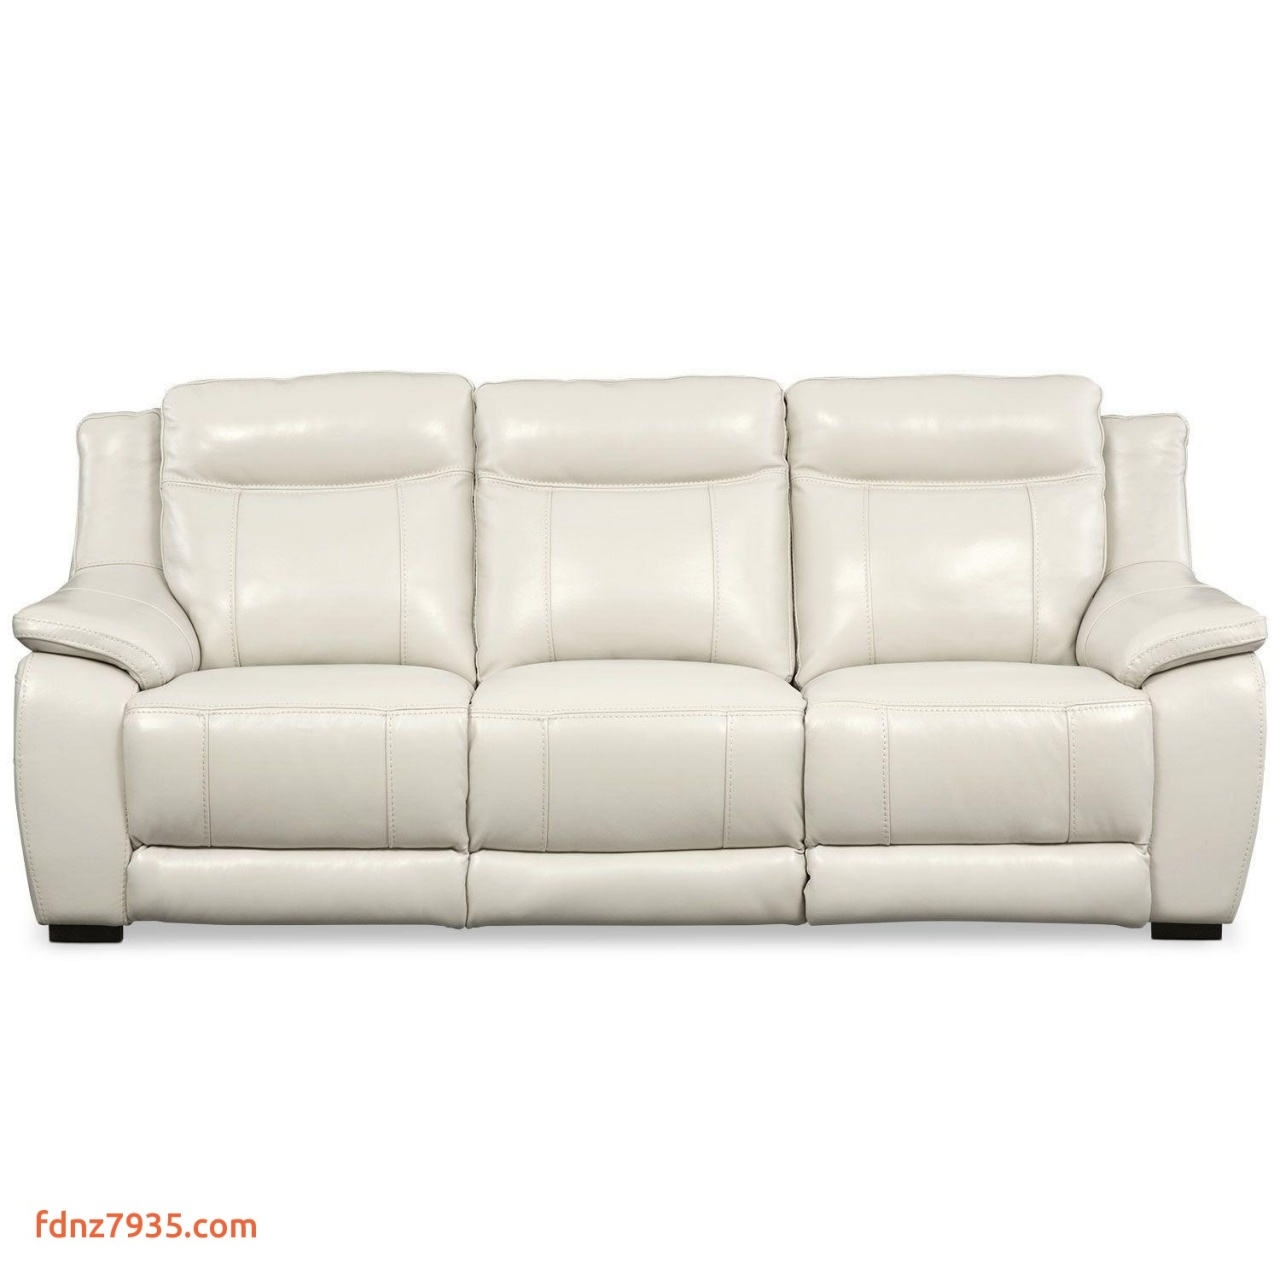 difference between sofa and loveseat sofa and loveseat recliner sets fresh sofa design from difference between sofa and loveseat